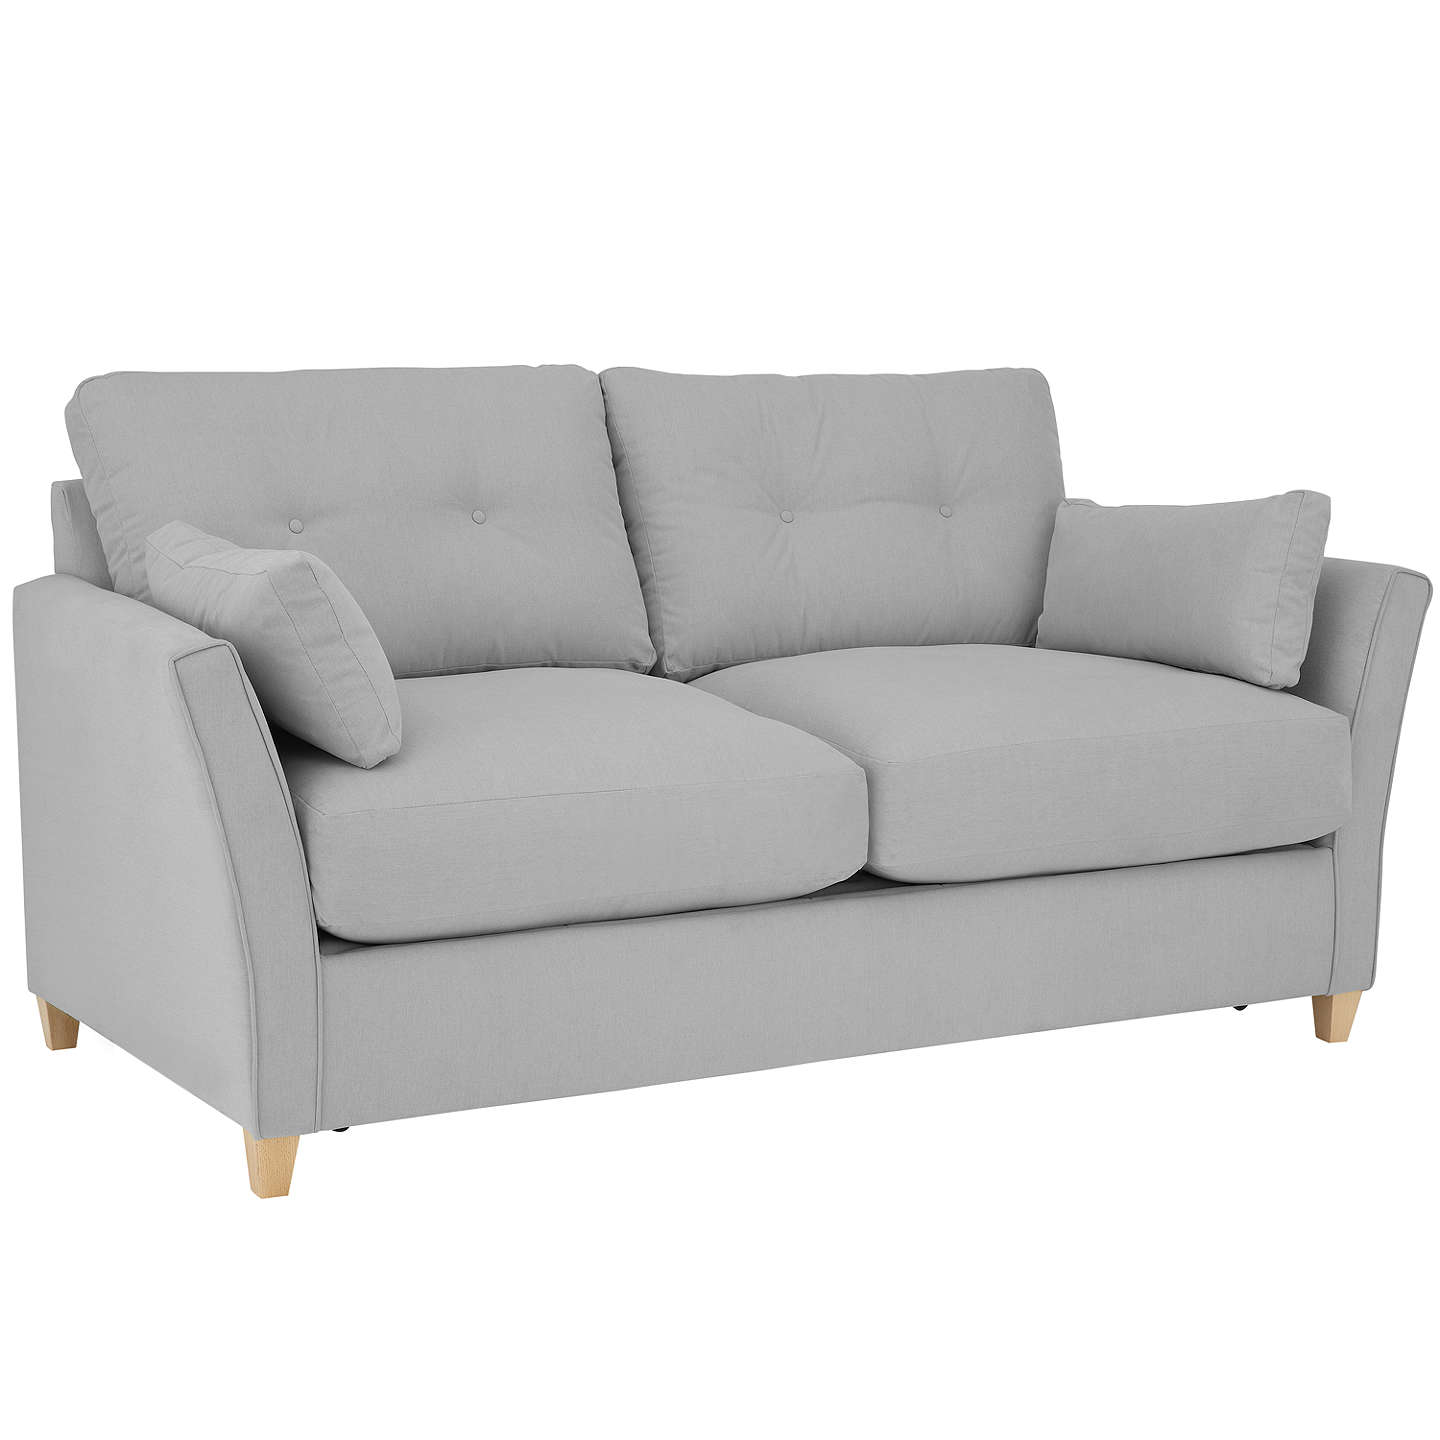 BuyJohn Lewis Chopin Medium Sofa Bed with Pocket Sprung Mattress, Light Leg, Mole Grey Online at johnlewis.com